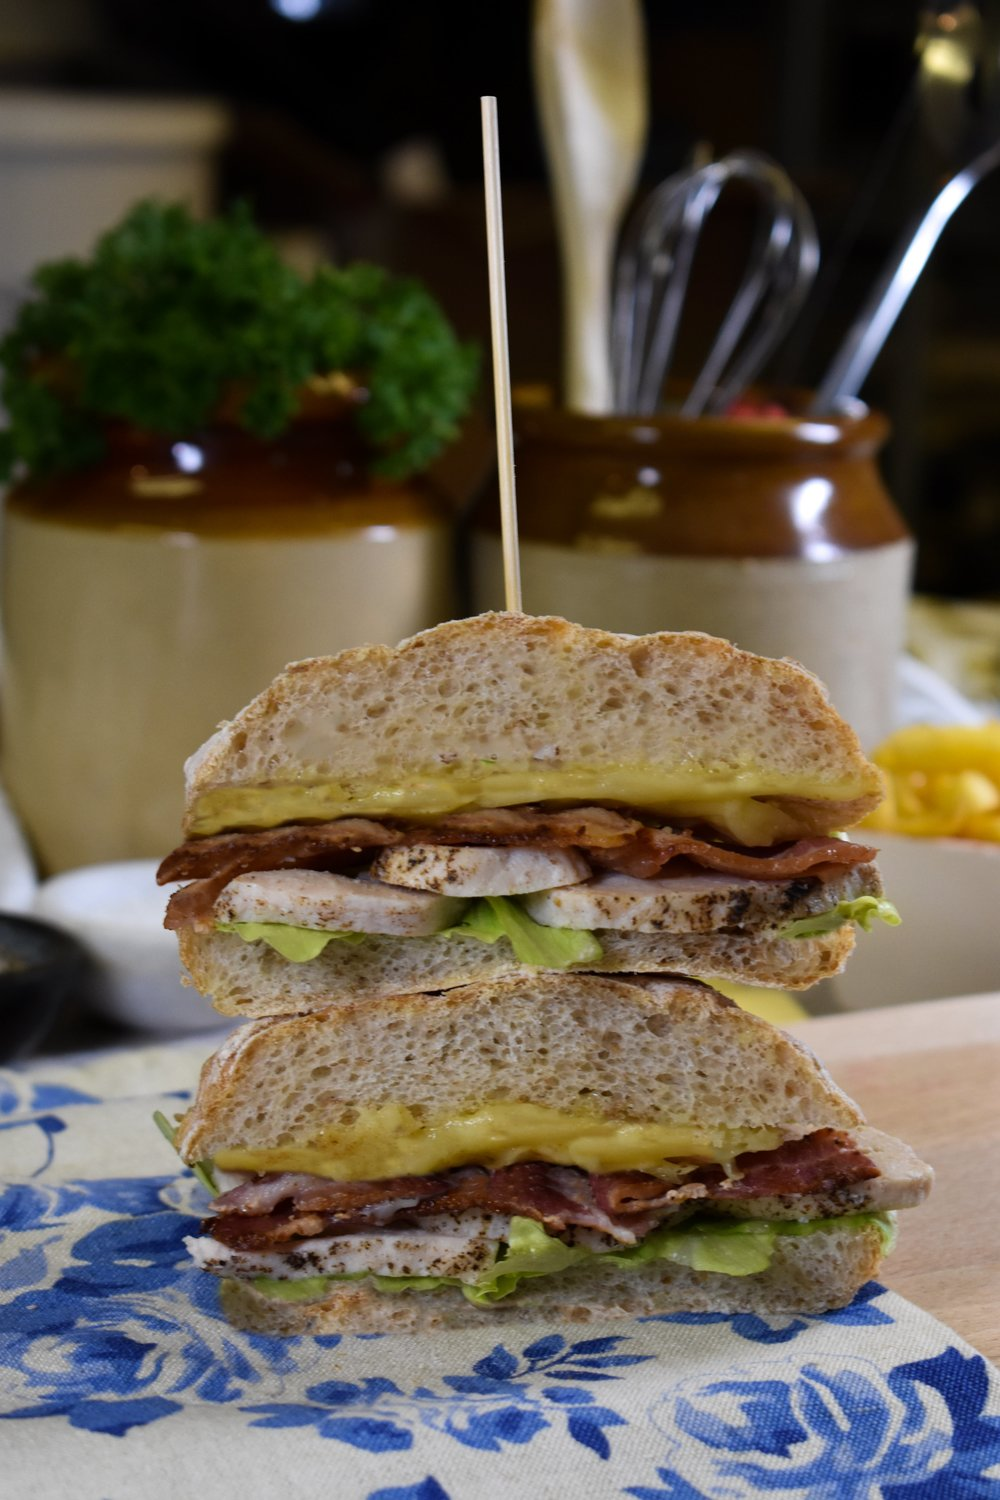 Brown Ciabatta filled with lettuce, chicken, bacon and melted cheese